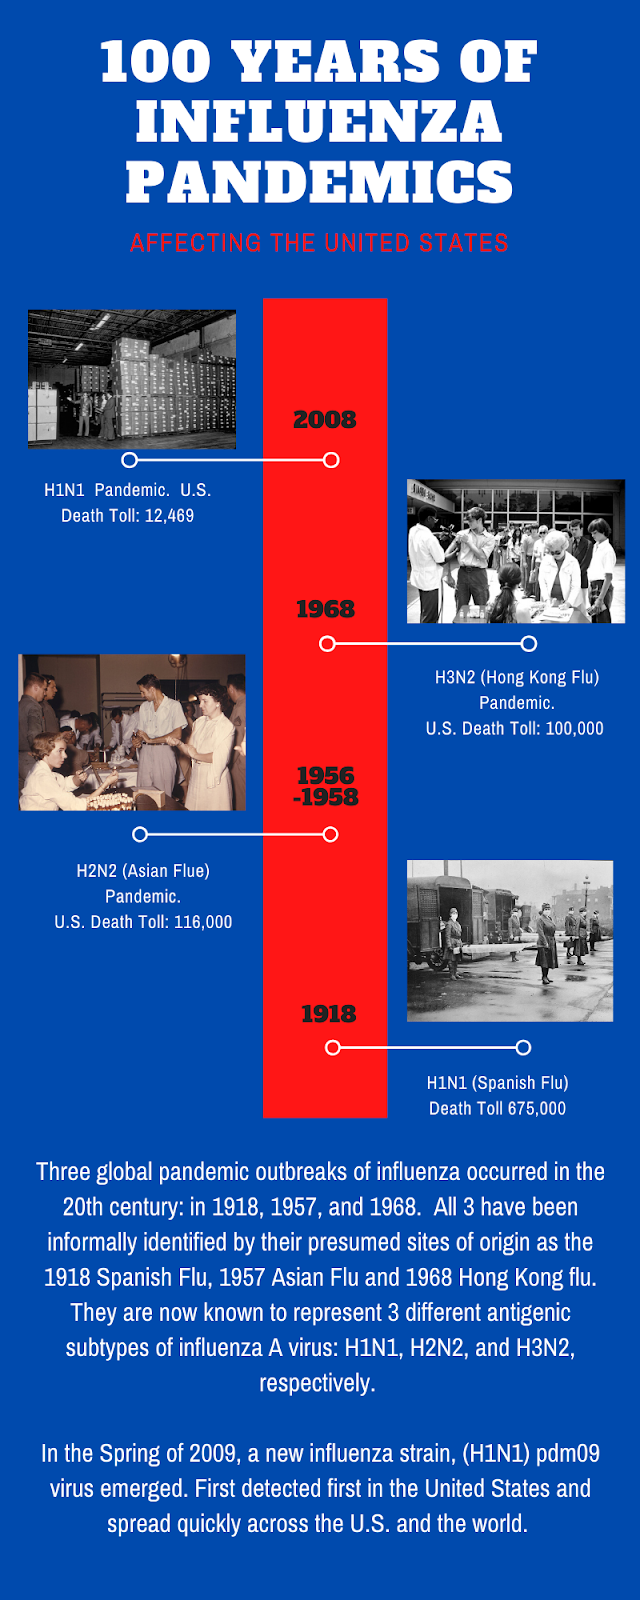 Infographic: 100 Years of Influenza Pandemics in the United States